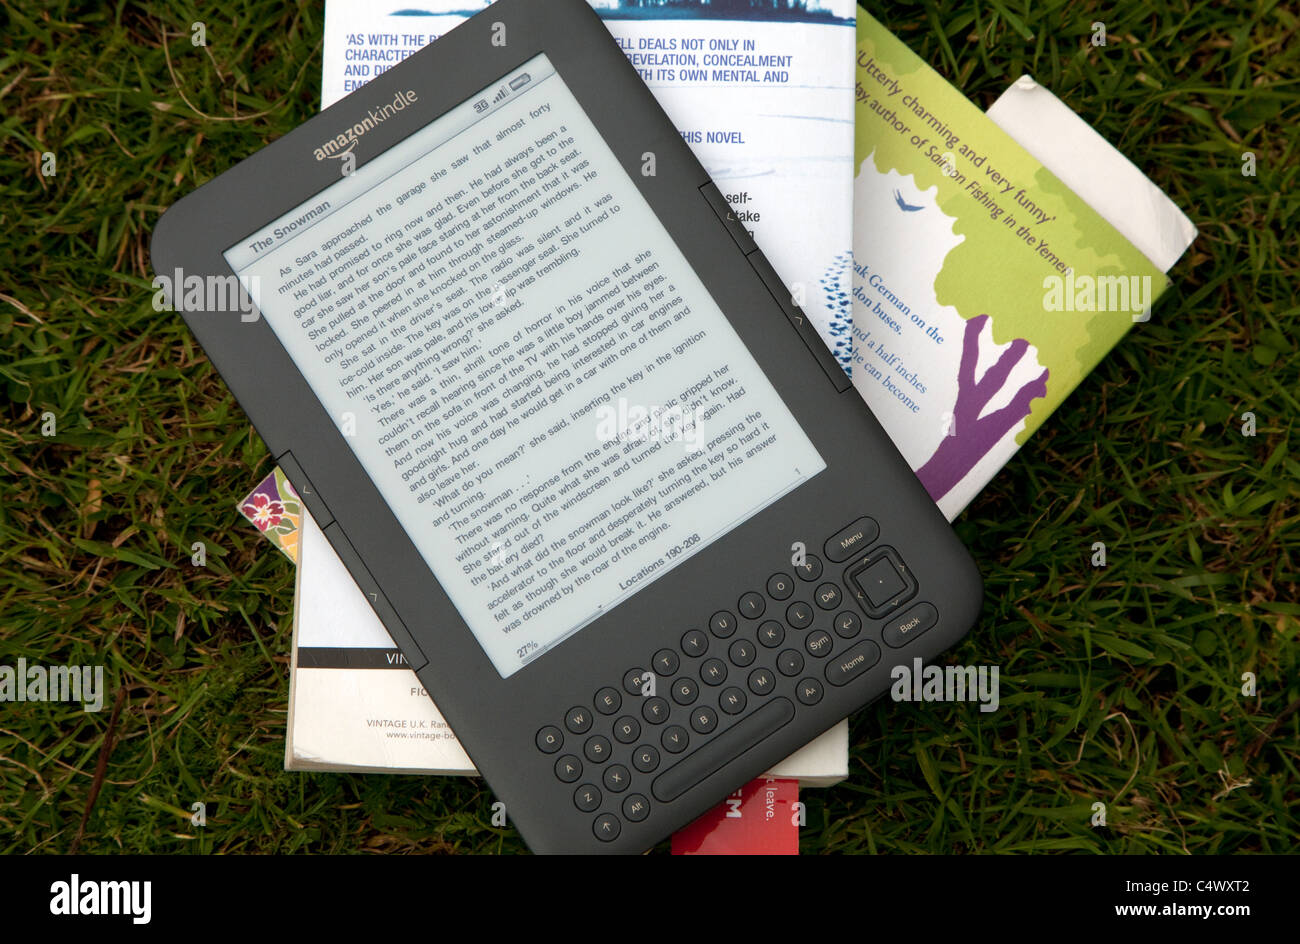 Amazon Kindle 3G e-book reader Stock Photo: 37449218 - Alamy